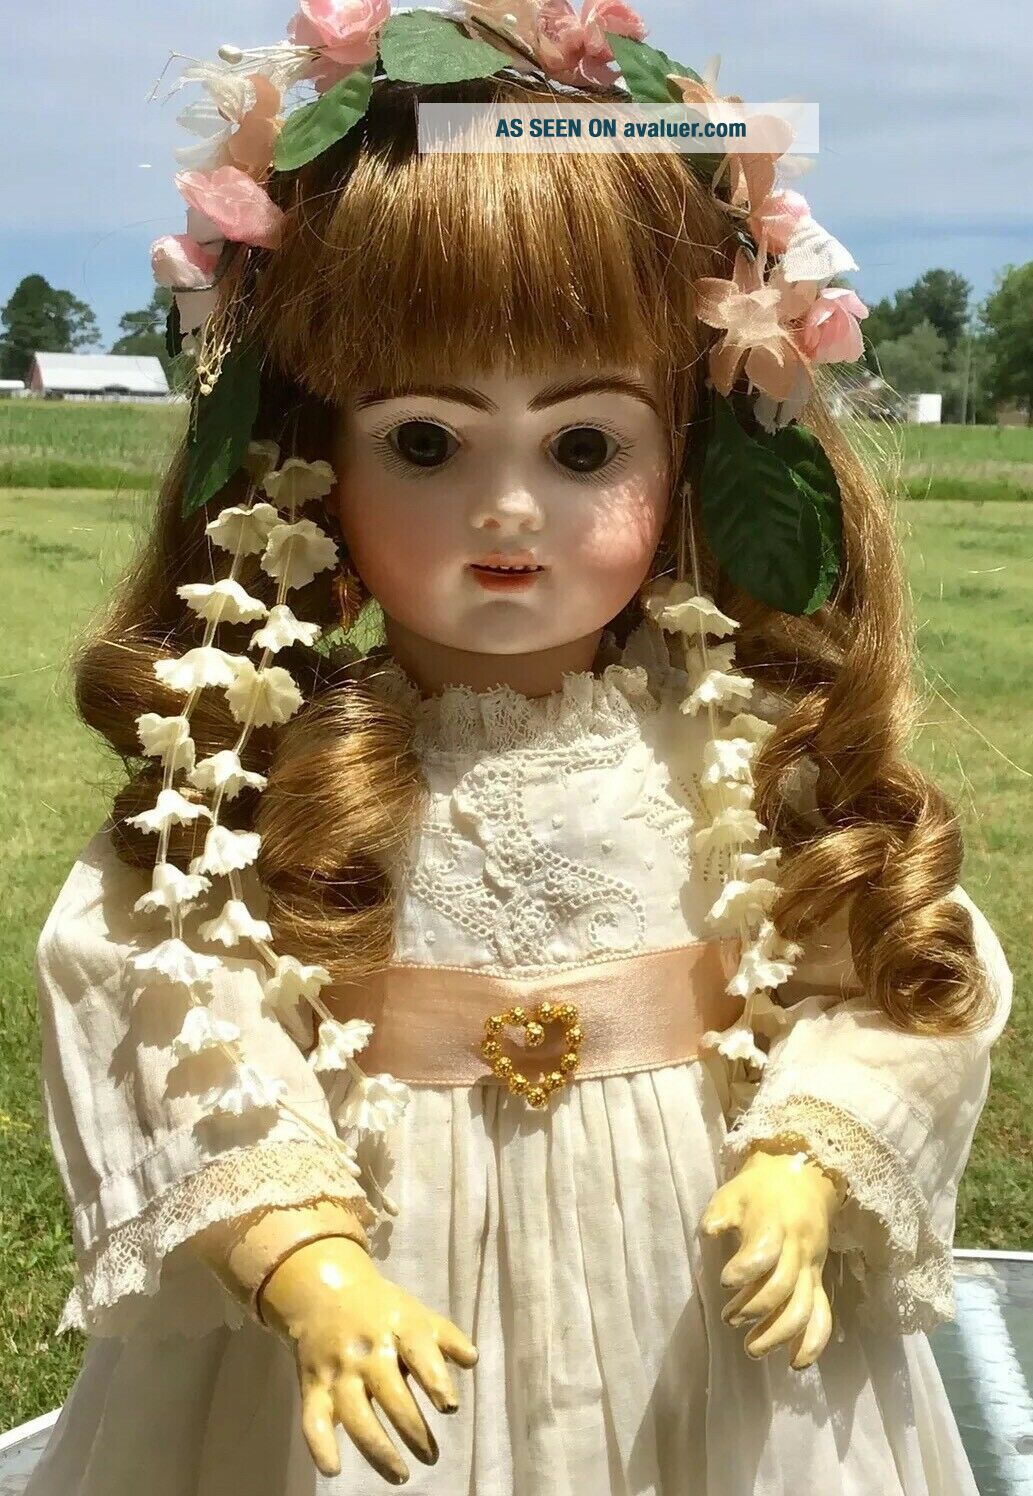 French Antique Doll Bru Jne R 8 Doll Antique Clothes And Shoes Apx 19 Inch